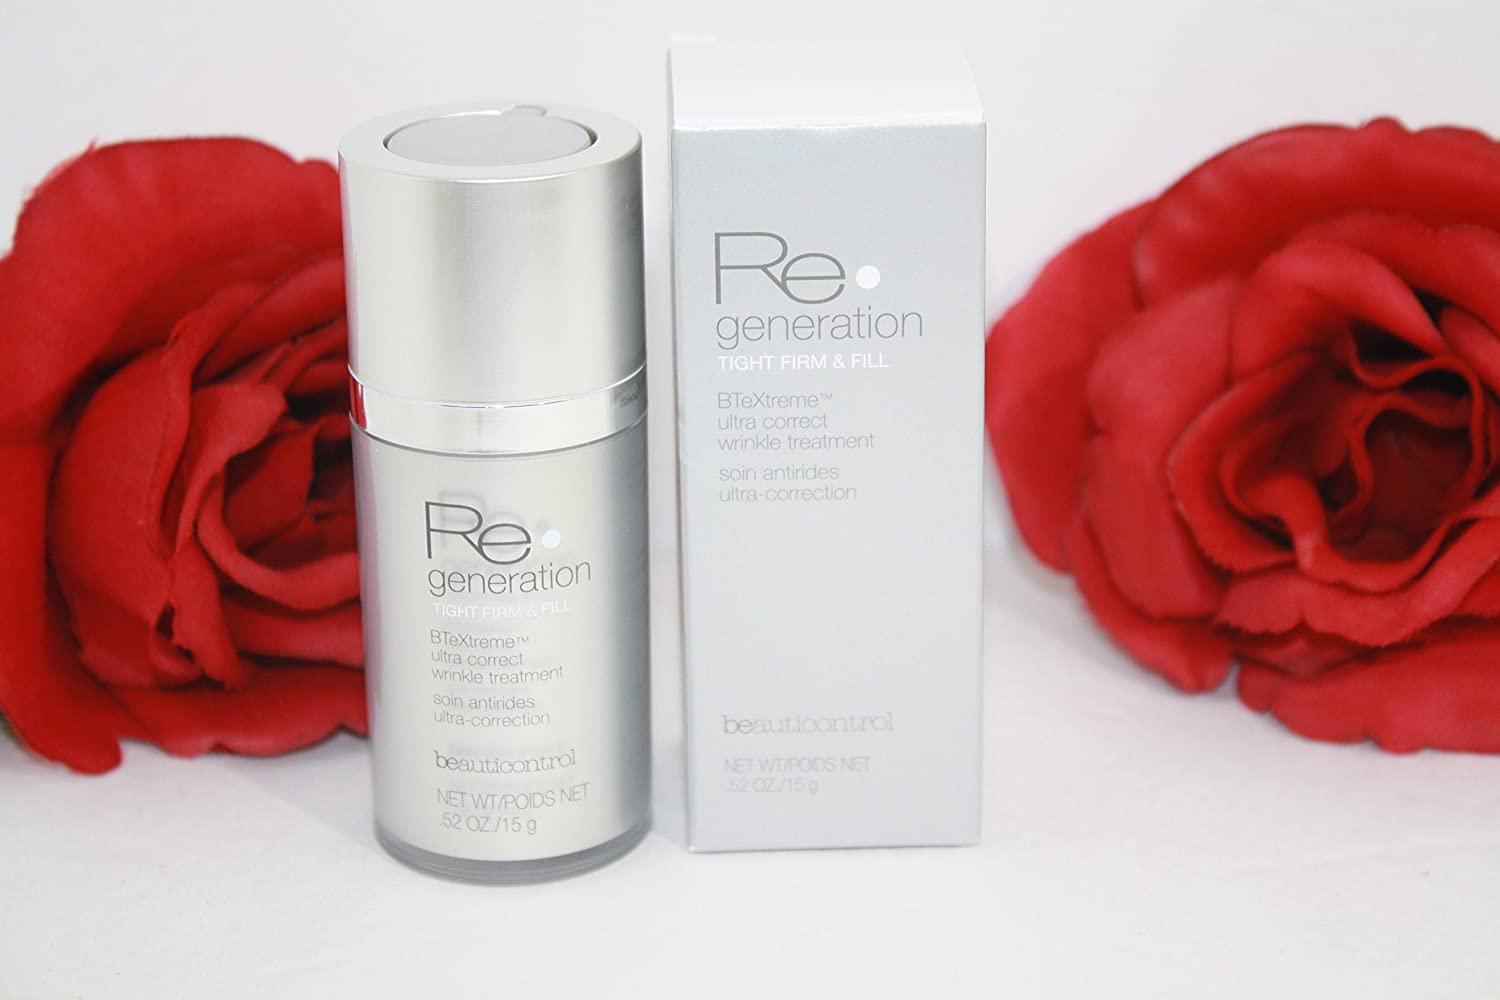 Beauticontrol Regeneration Tight, Firm & Fill Btextreme Ultra Correct Wrinkle Treatment